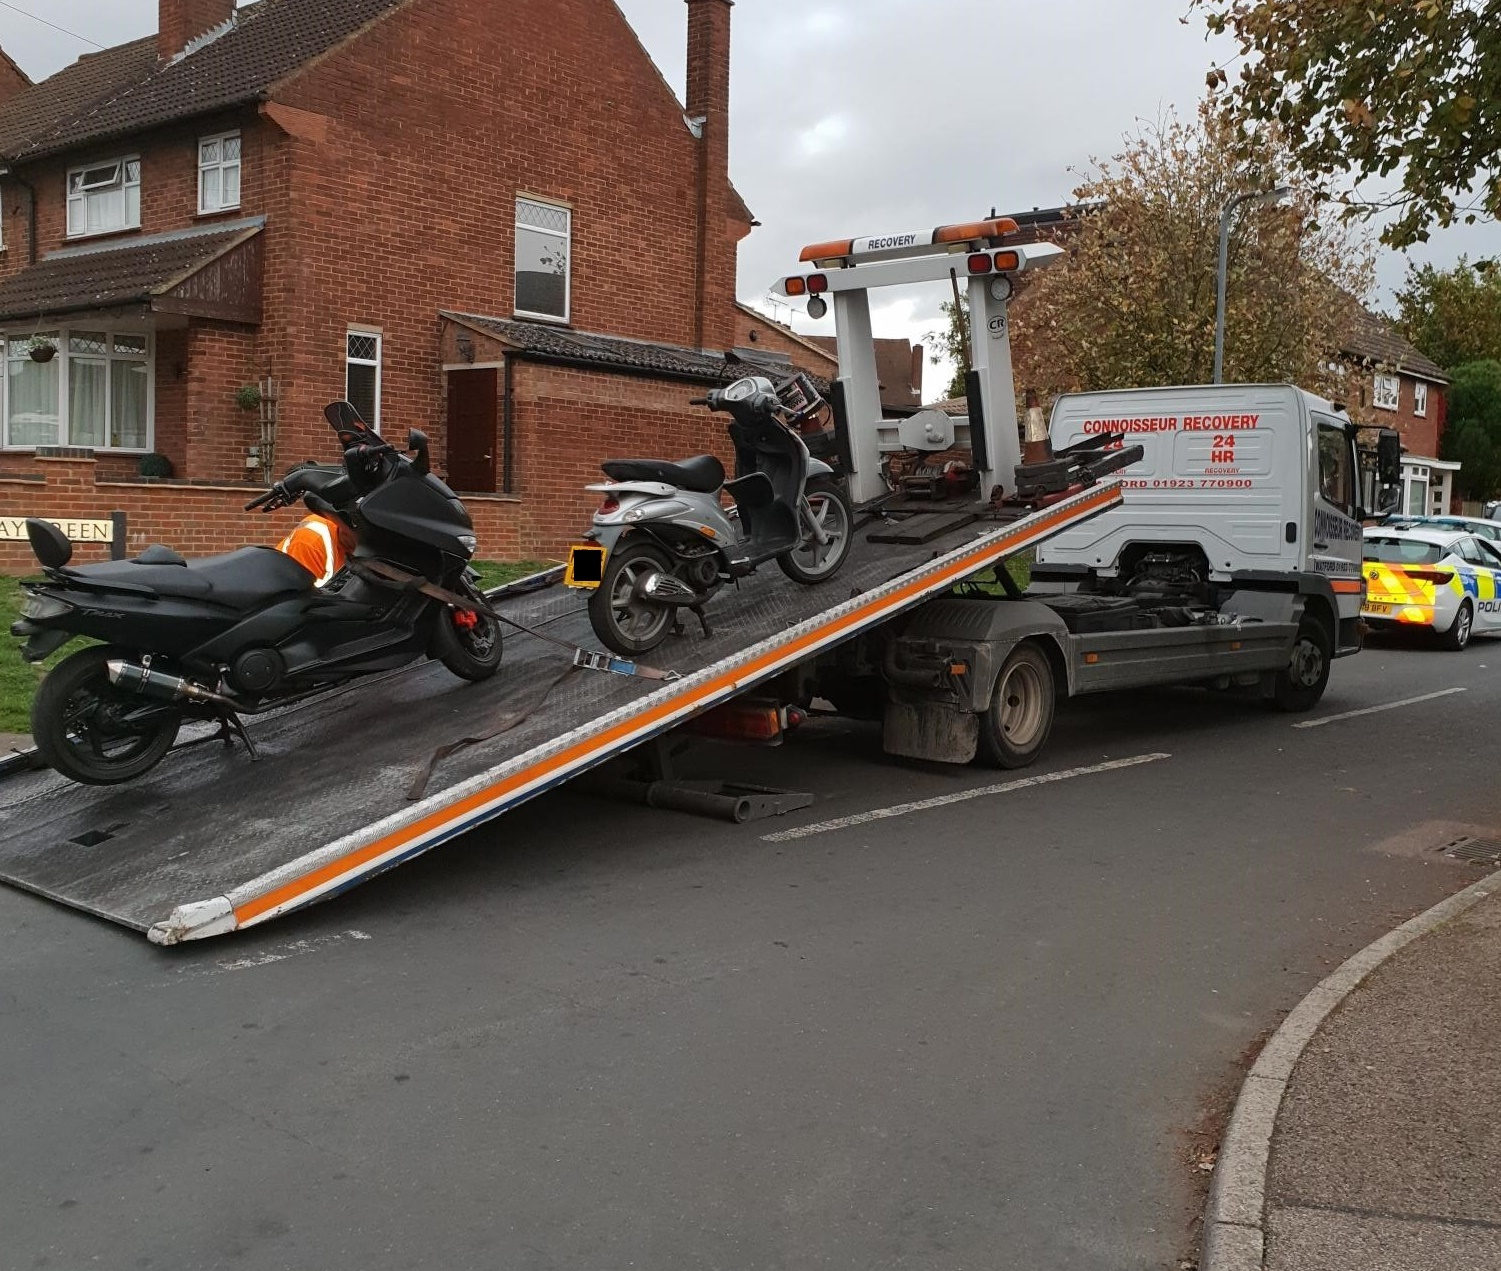 The bikes were traced to an address in Abbots Langley where they were seized by police on Tuesday